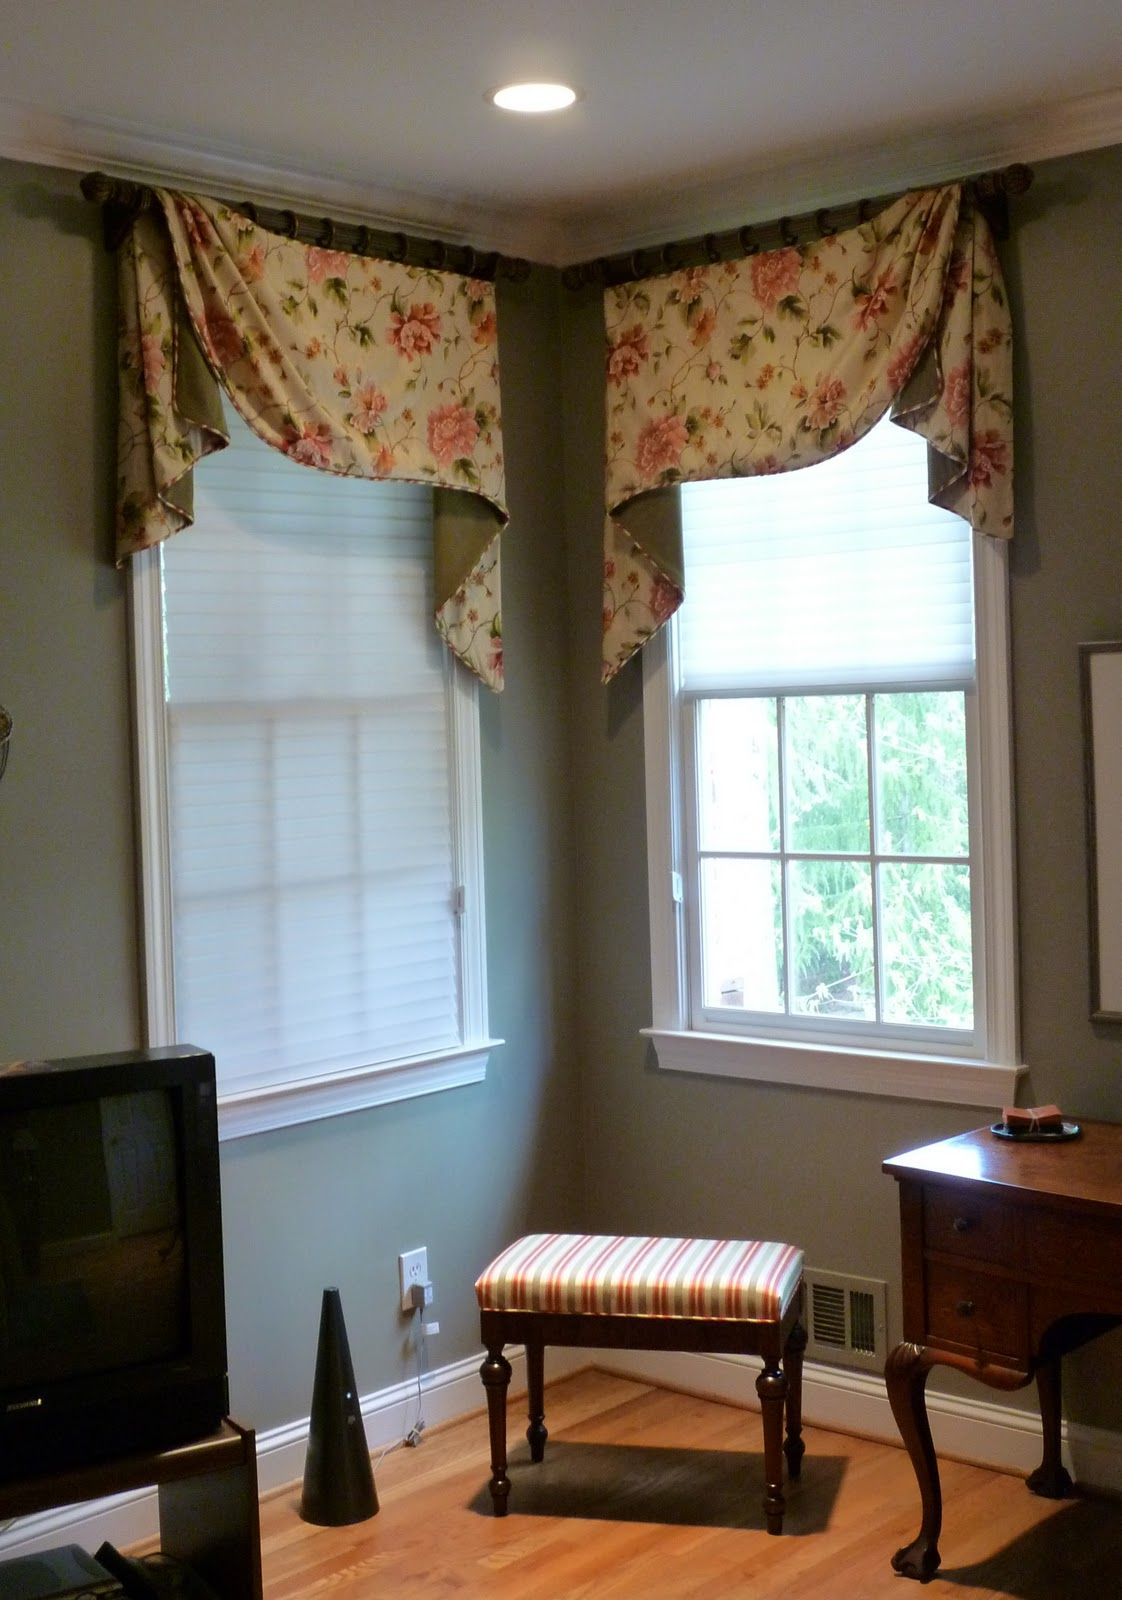 4 window curtain ideas  curtains and window treatments for master bedroom with fireplace